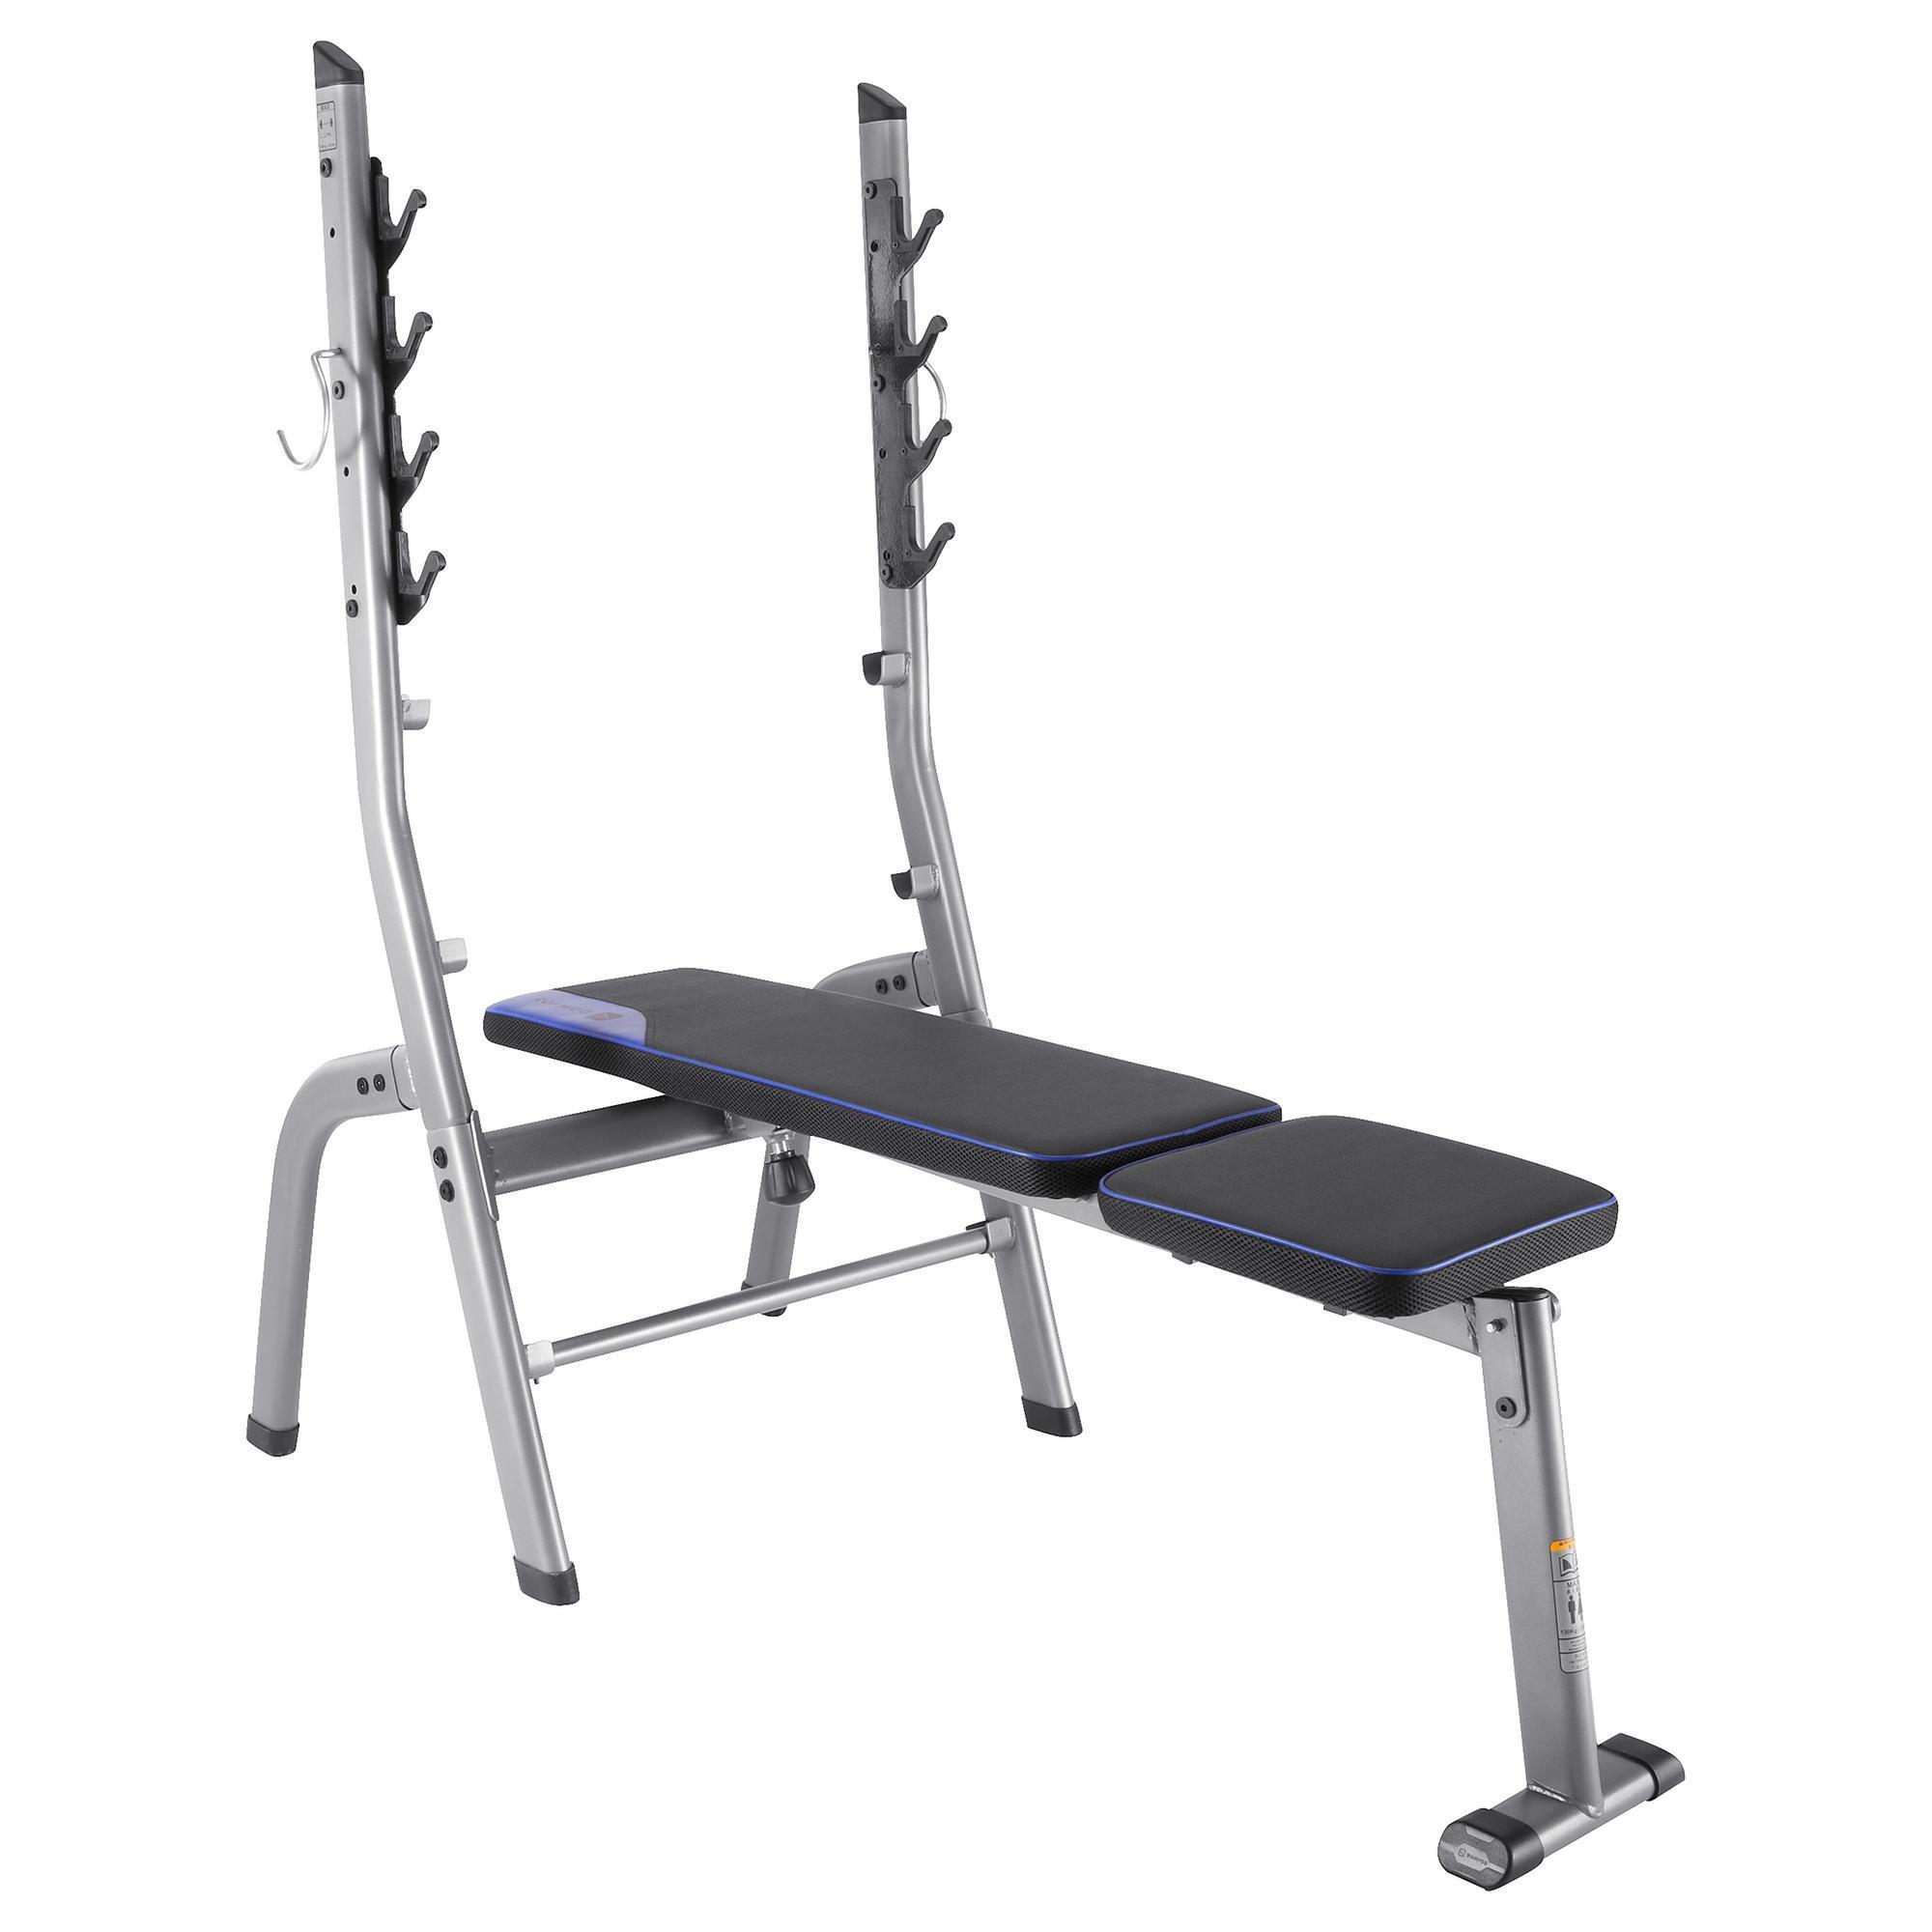 6 exercises with a weights bench domyos by decathlon 100 weight bench nvjuhfo Image collections